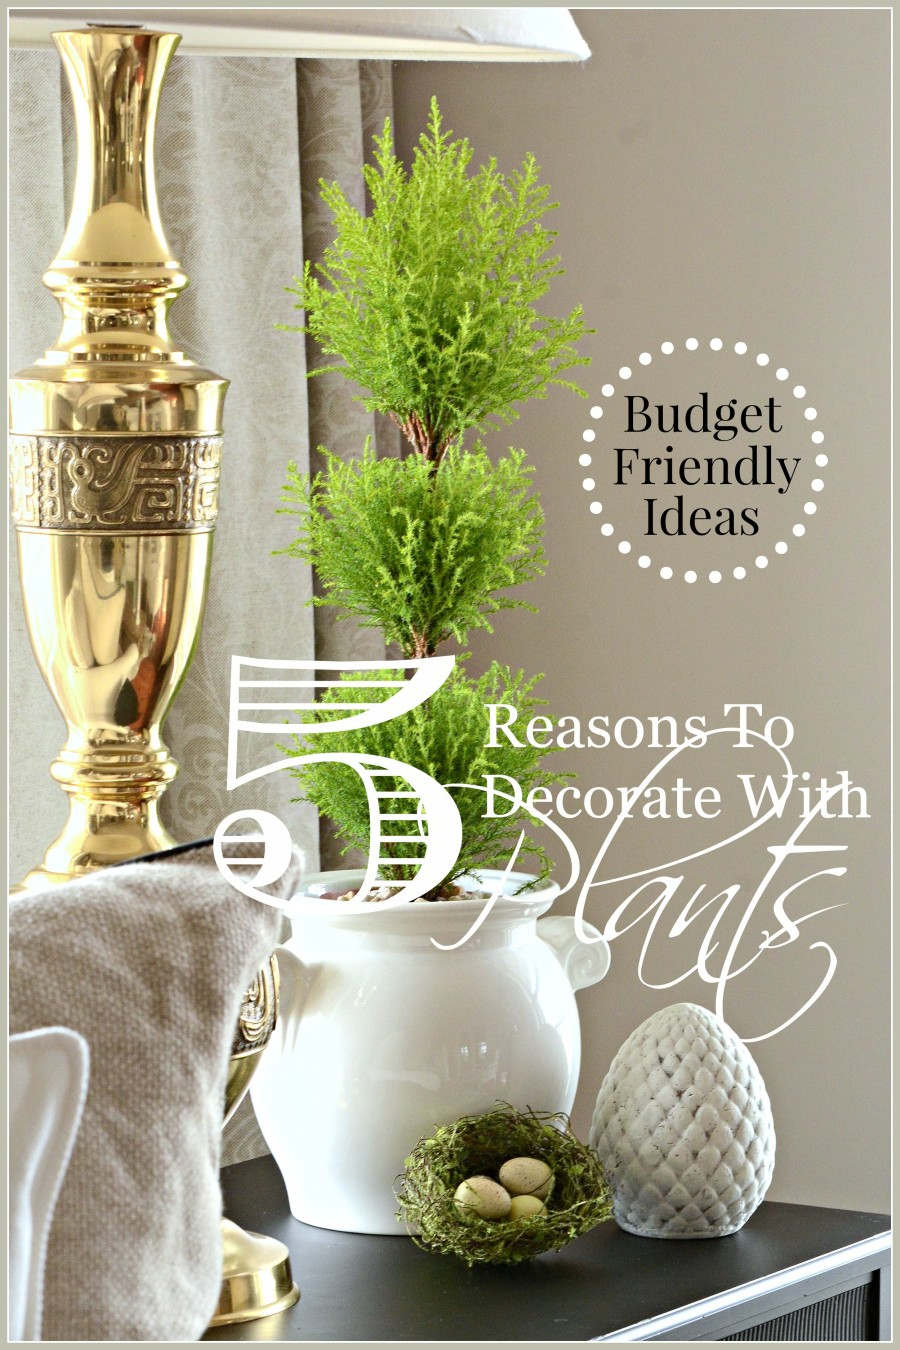 5 REASONS TO DECORATE WITH PLANTS… BUDGET FRIENDLY DECOR